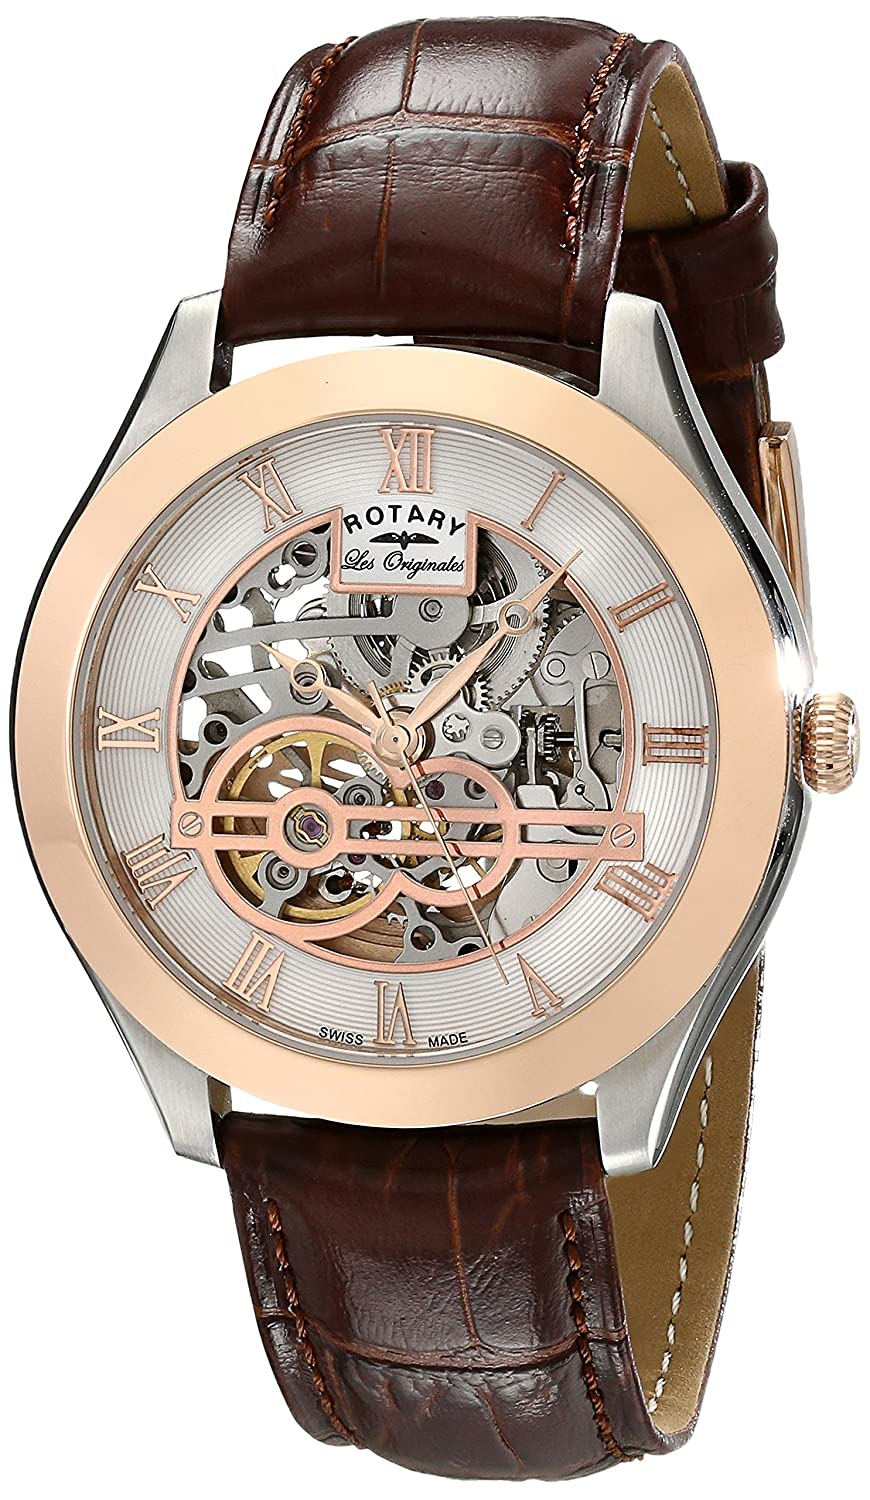 Rotary Men's Analog Display Swiss Automatic, Skeleton Watches, Swiss Made Watches, Elegant Watch, Leather Watch